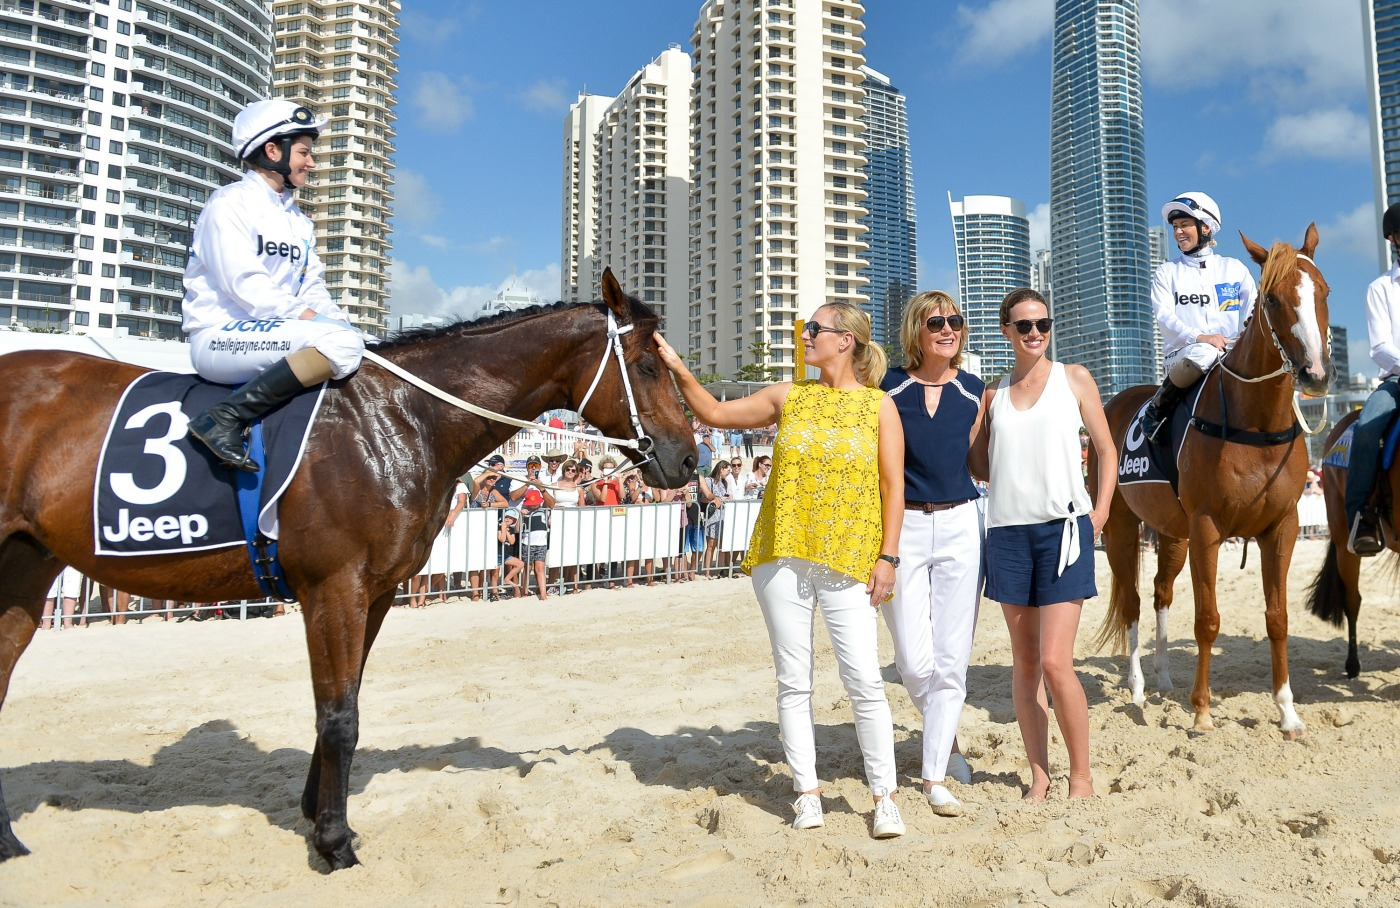 20170110-magic-millions-barrier-draw-michelle-payne-zara-phillips-katie-page-harvey-francesca-cumani-kathy-ohara-sheik